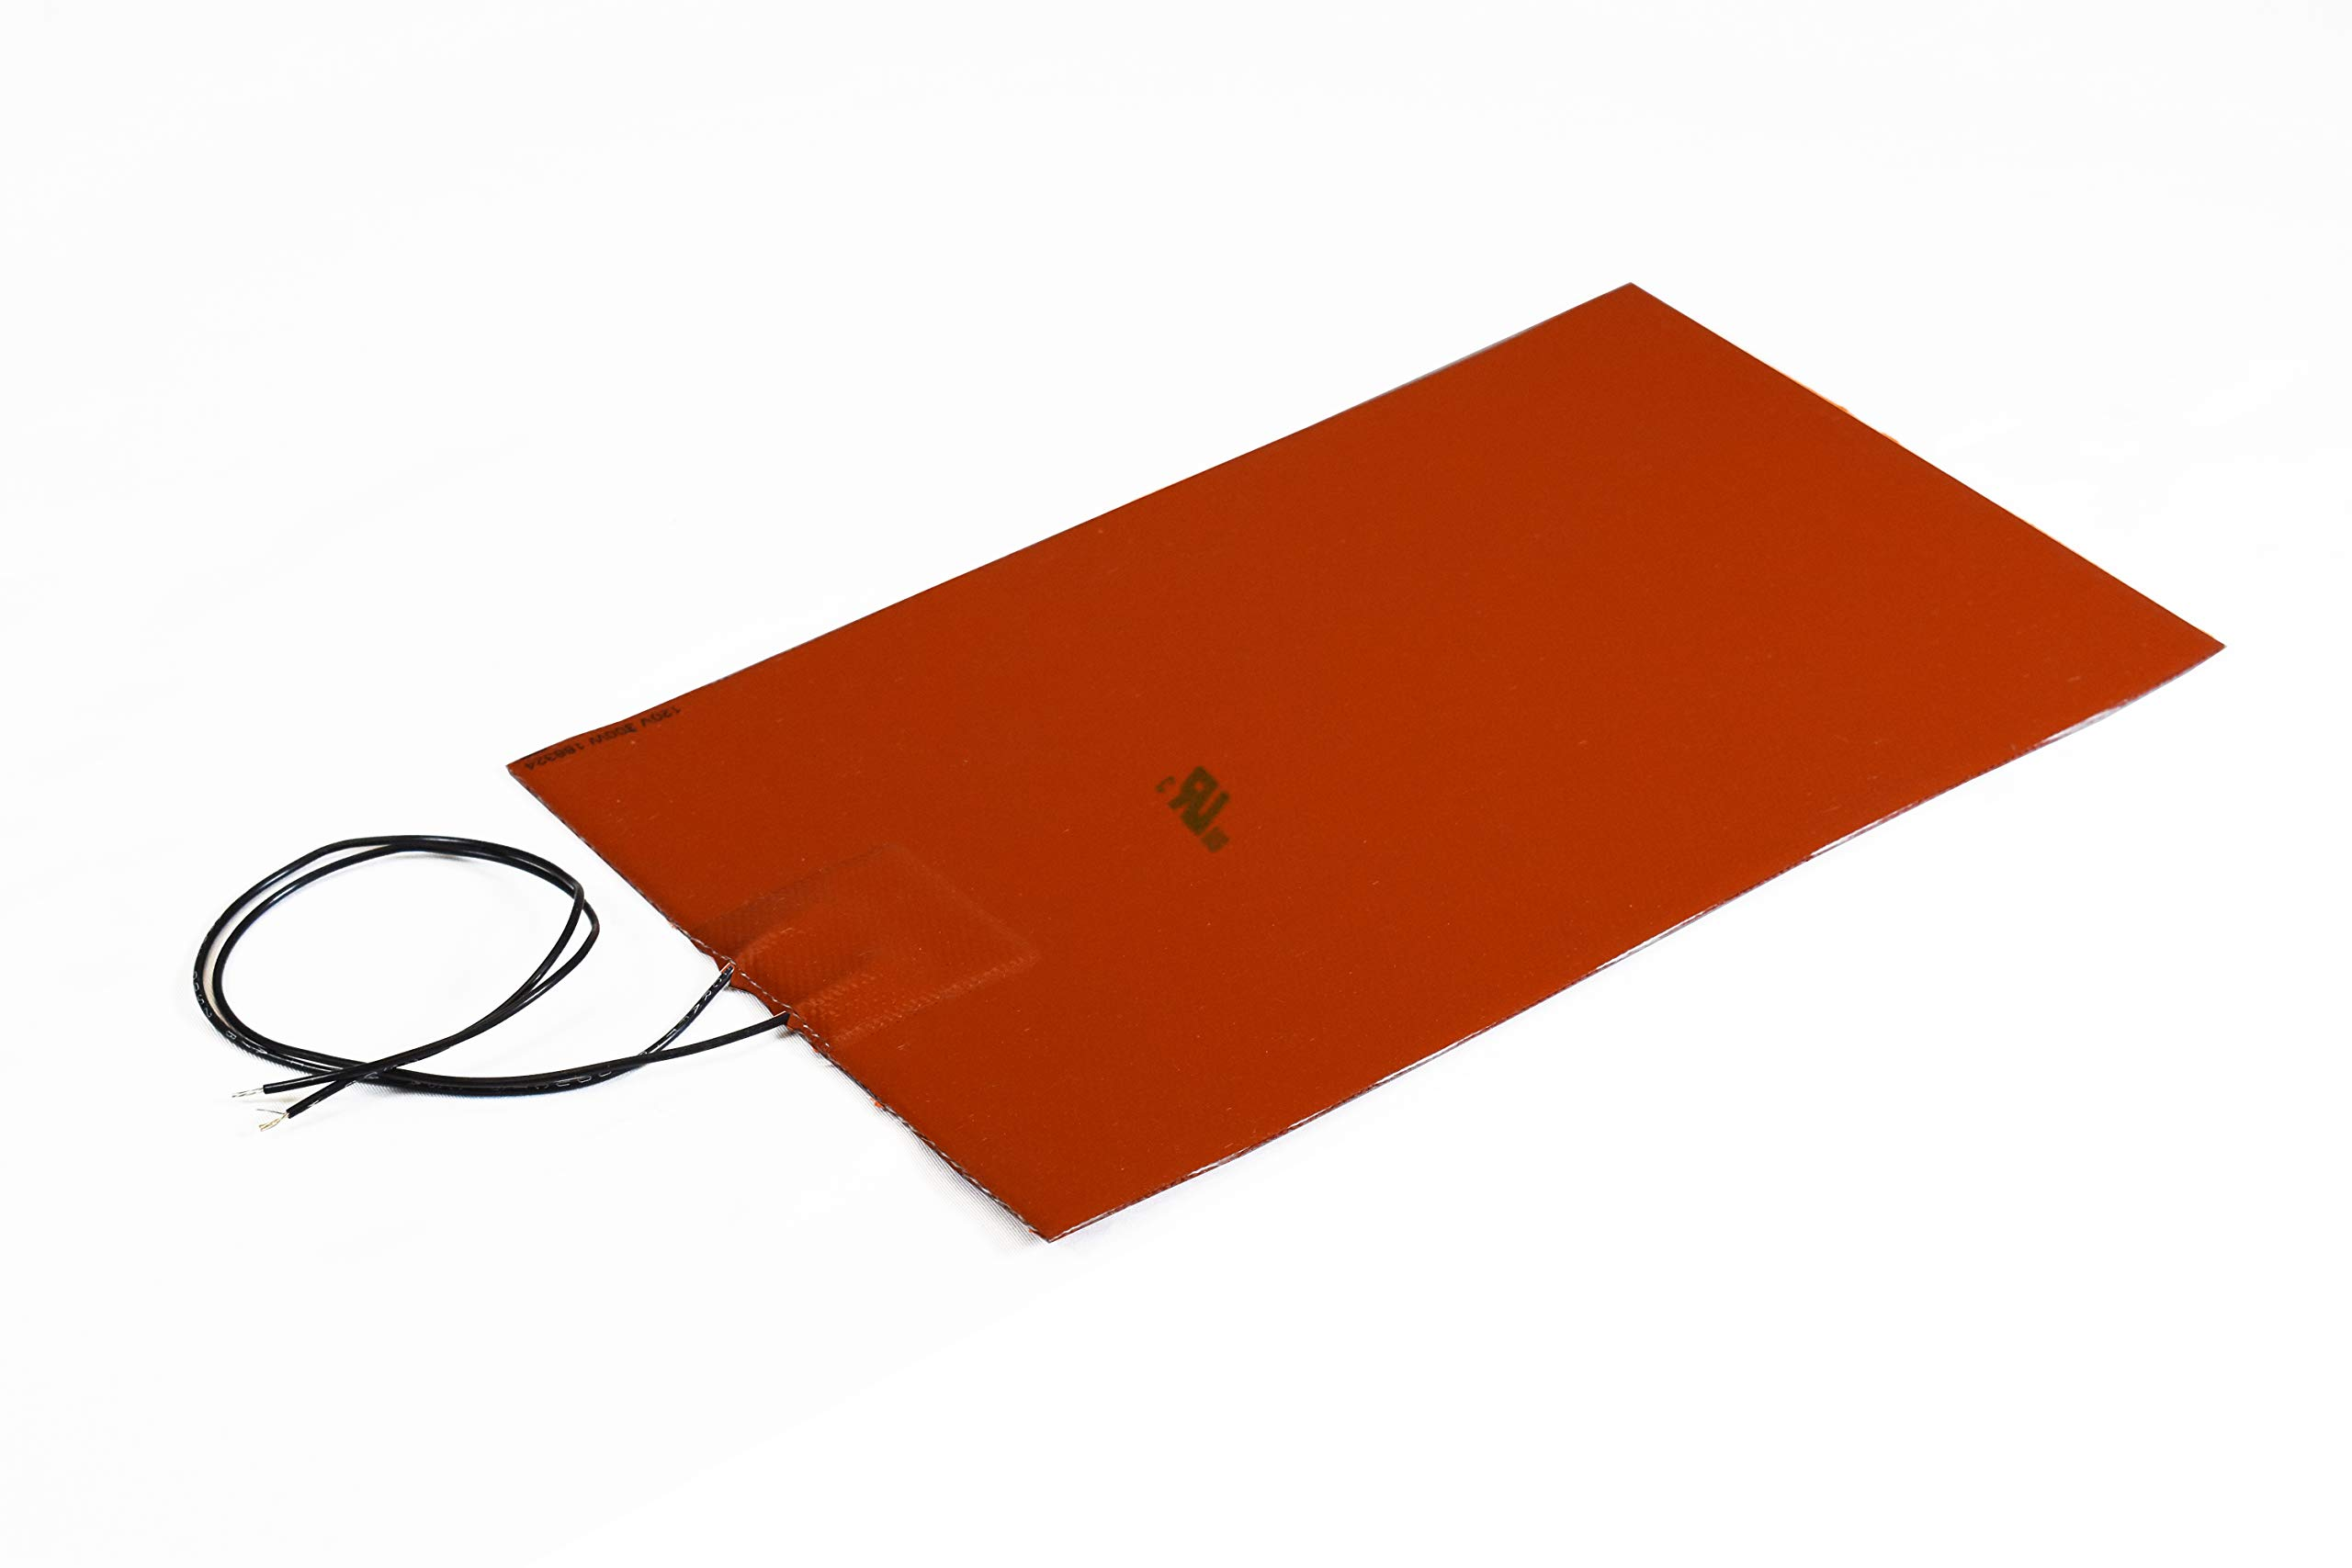 SRW Economy-Series Silicone Rubber Heating Blankets 5 in Wide x 10 in Length, 120V